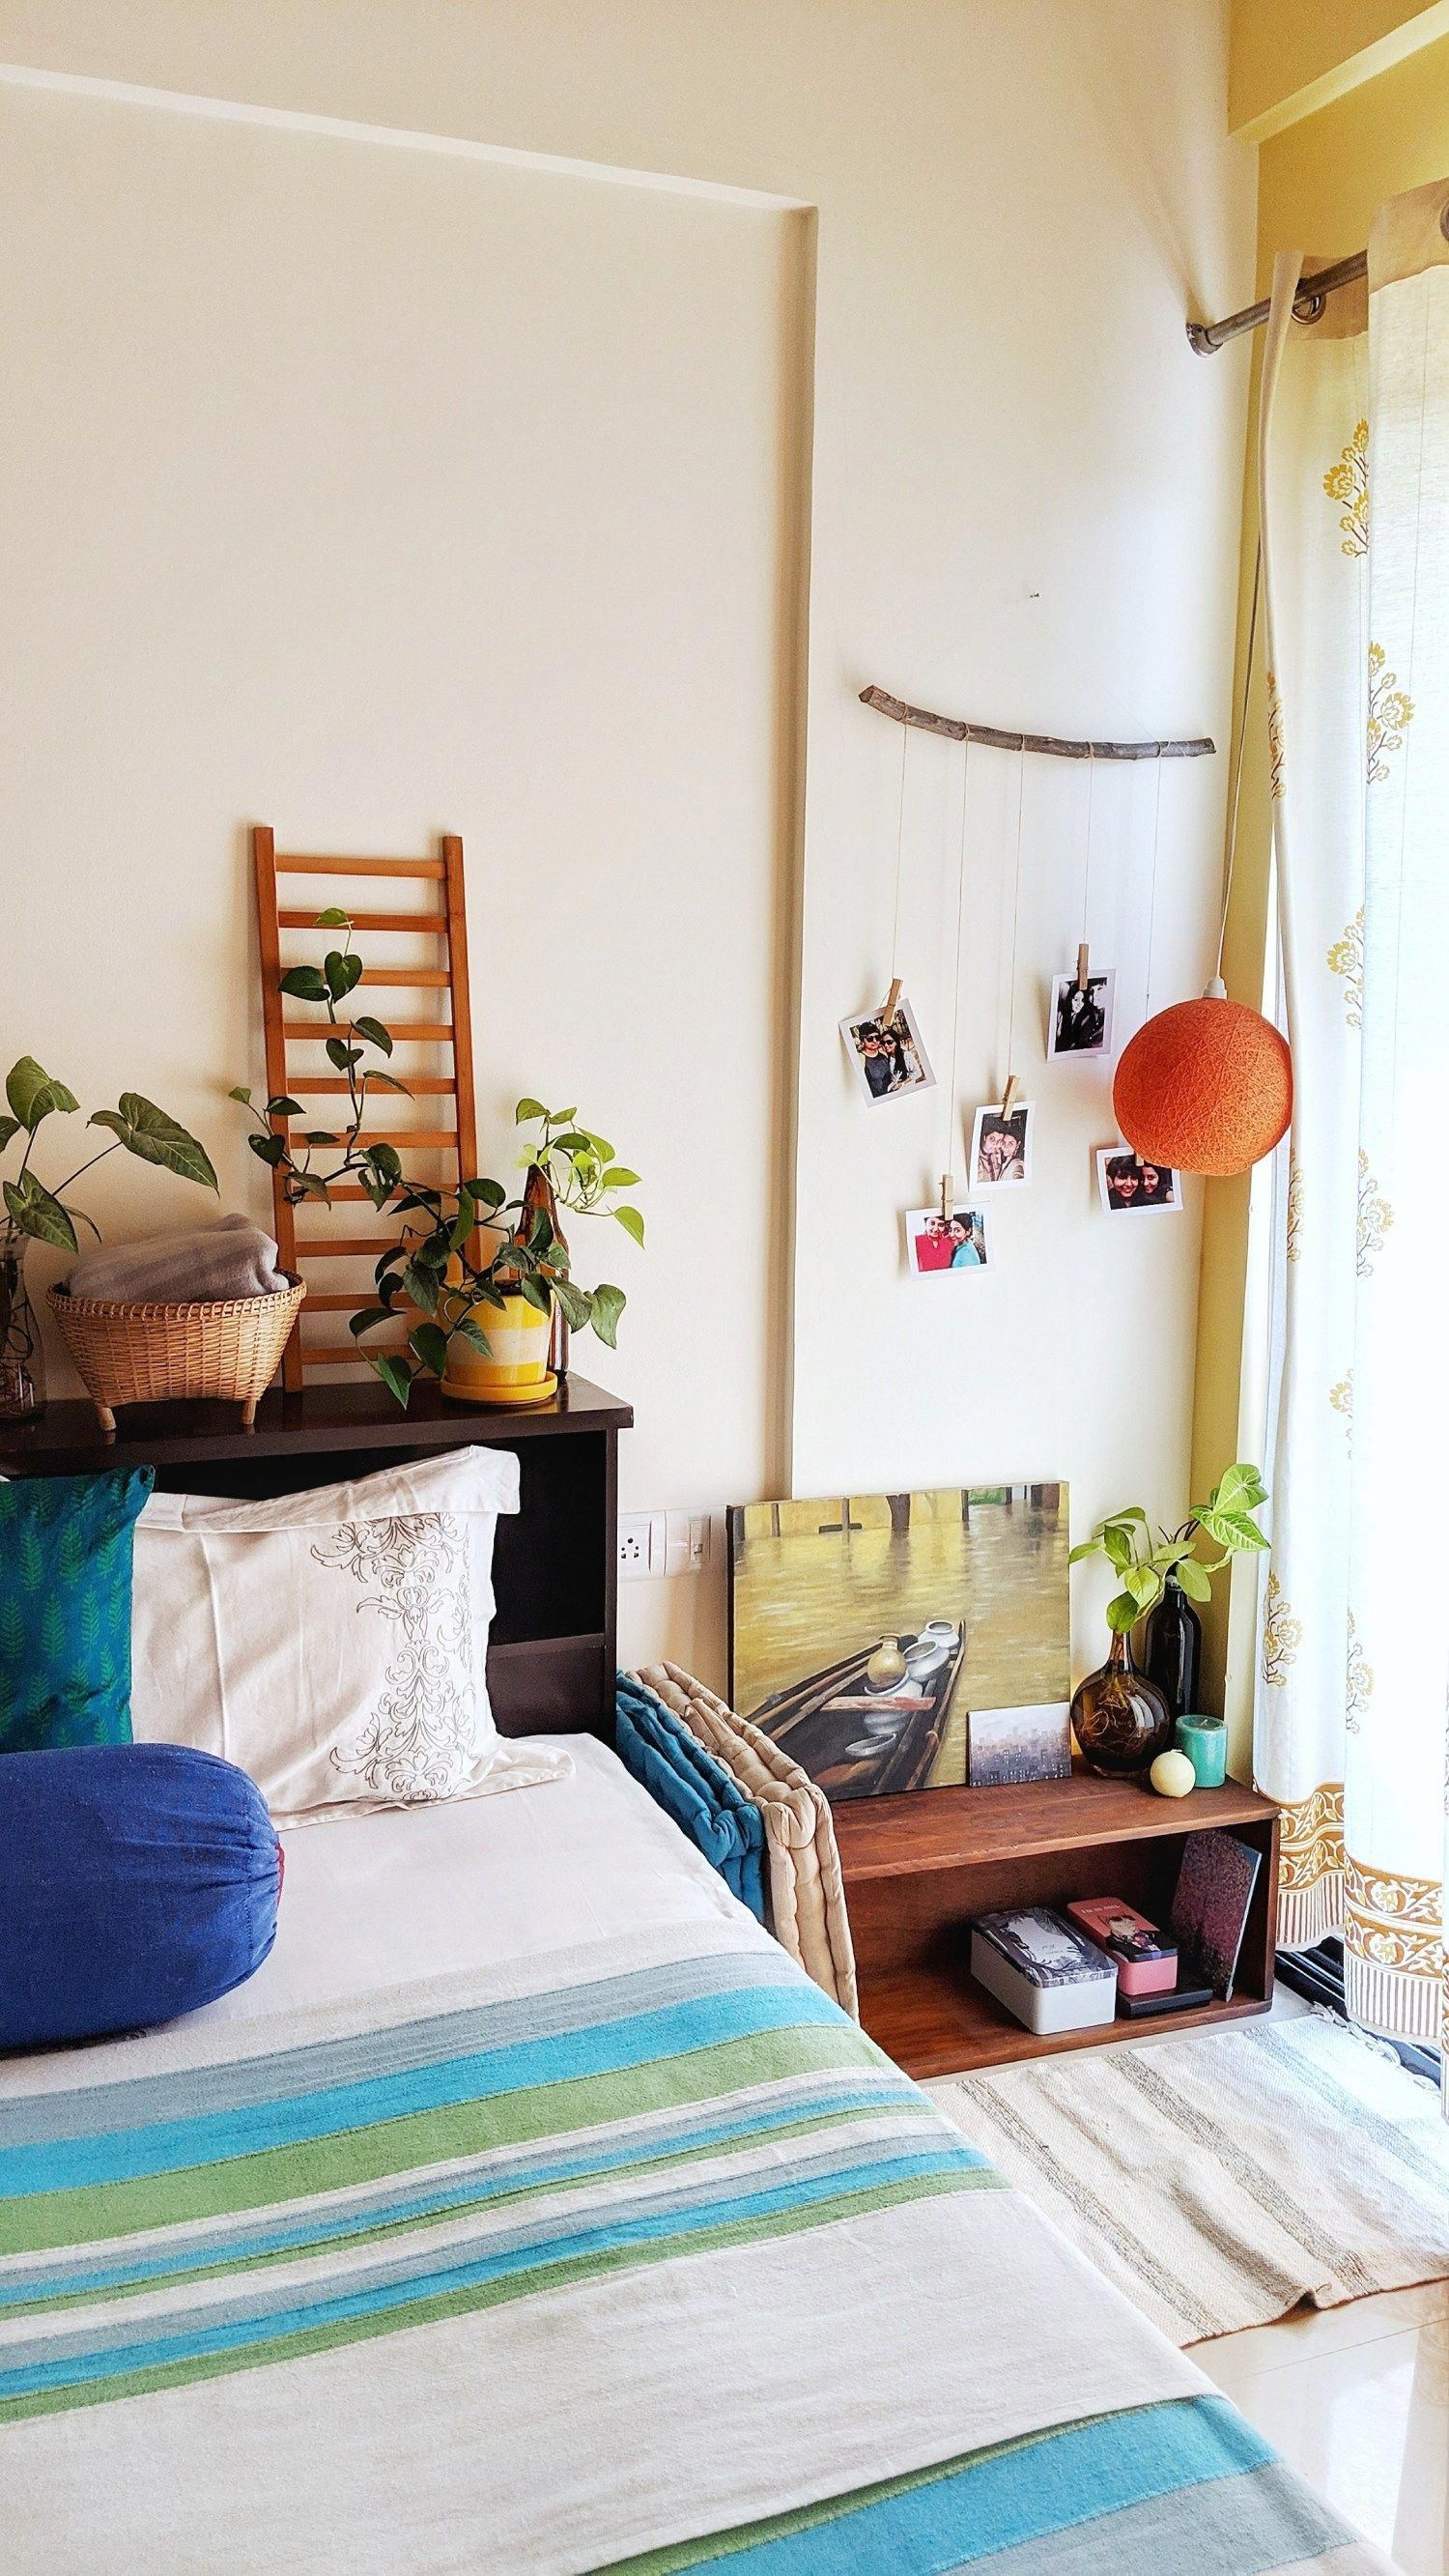 Jayati and Manali share their home tour as the science home décor - the bedroom is decorated with beautiful photos, hanging light, green plants, ladder and handpainted frame #indischesschlafzimmer